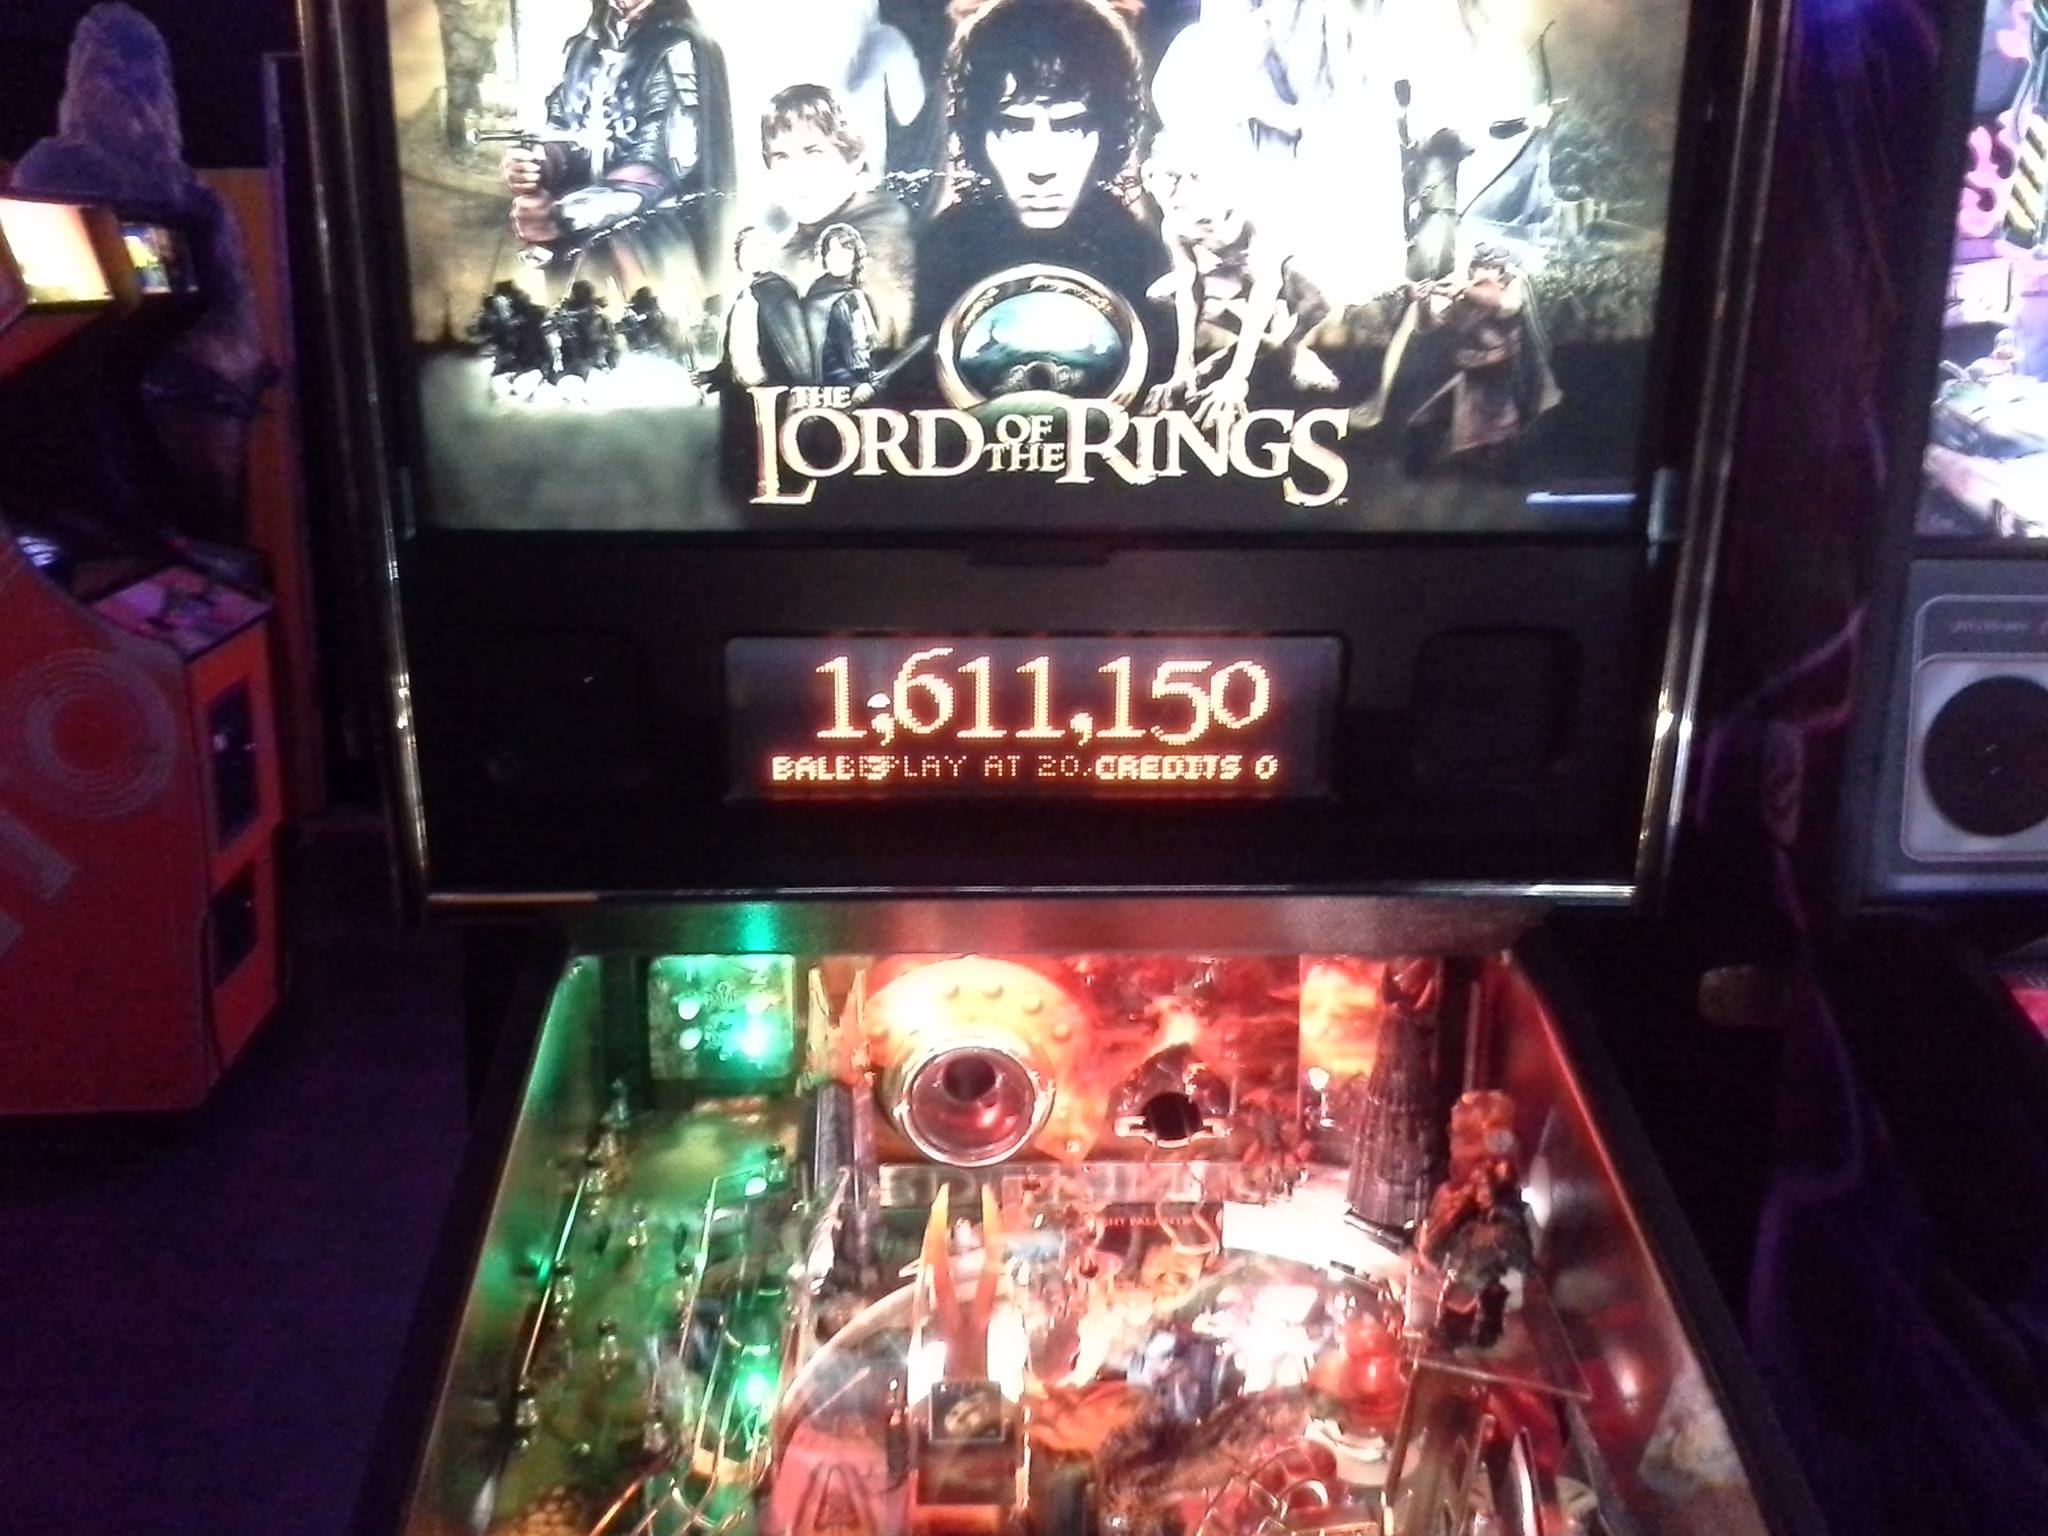 The Lord of the Rings 1,651,150 points